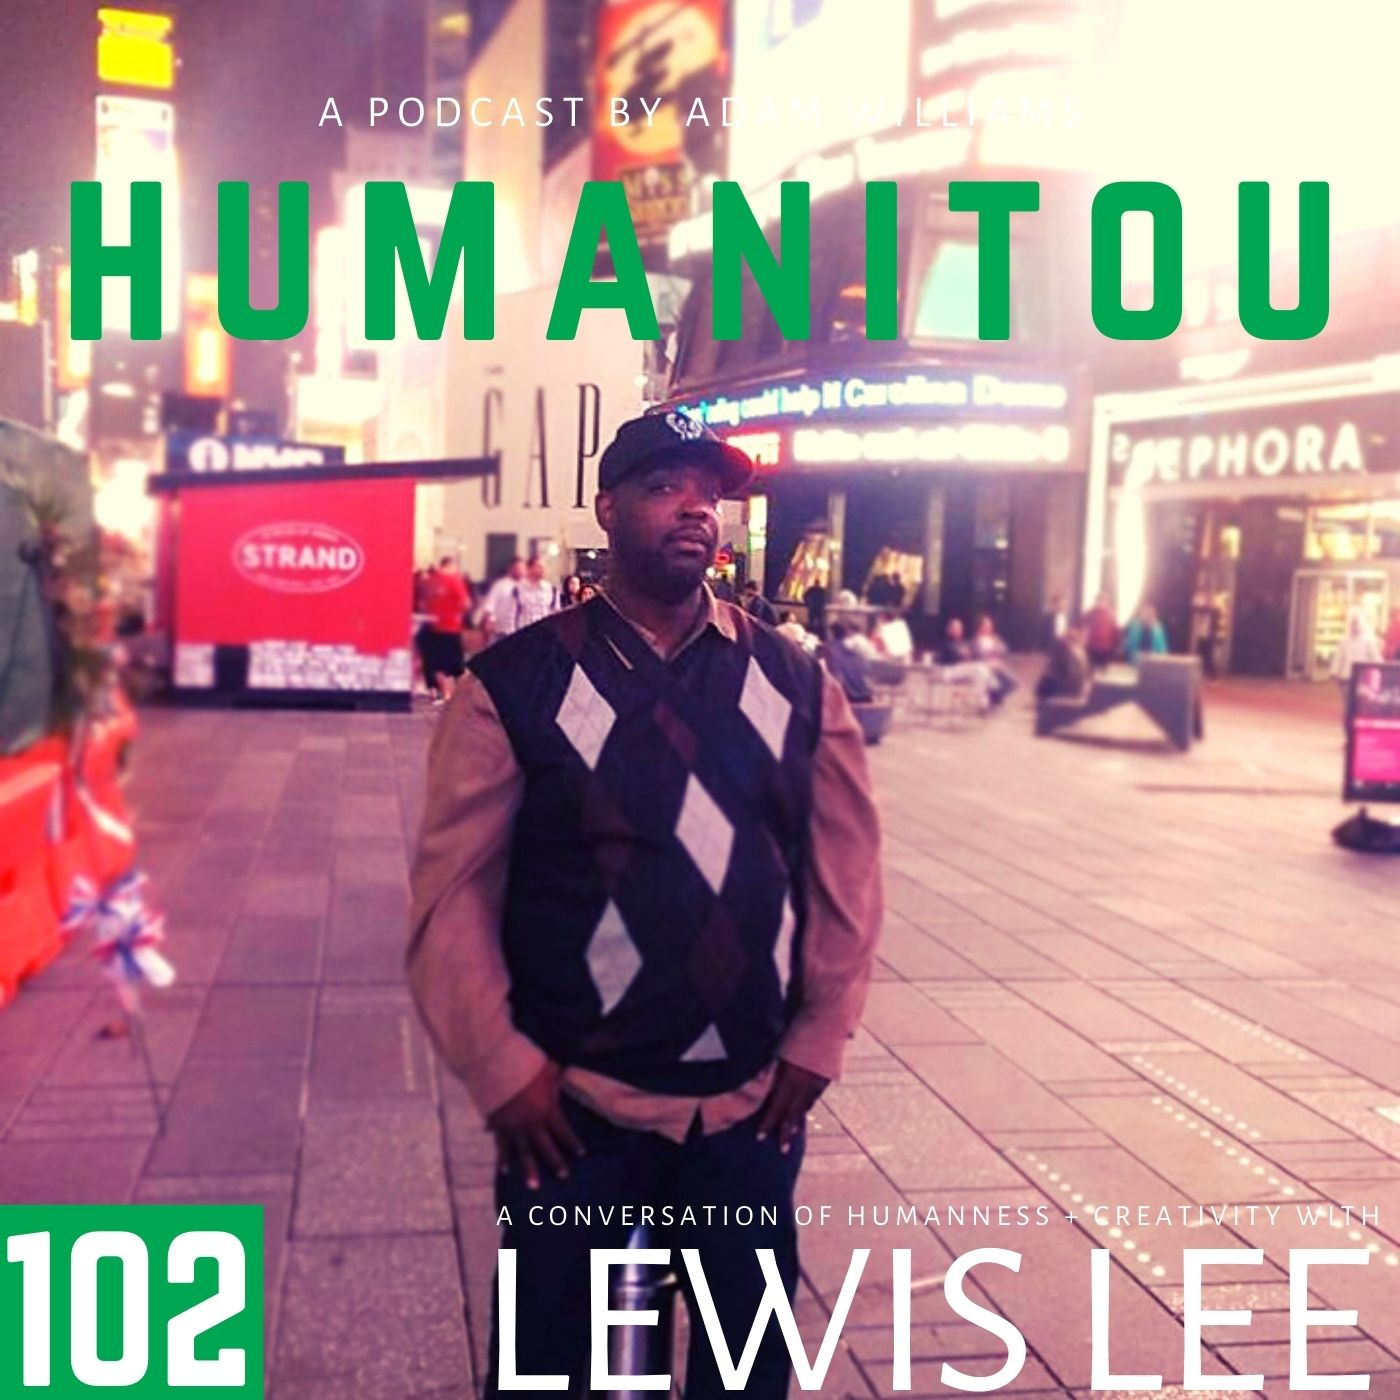 102: Lewis Lee, community facilitator and mentor, on using technology and creativity to make change in the 53206, staying out of prison and cultivating a legacy of good